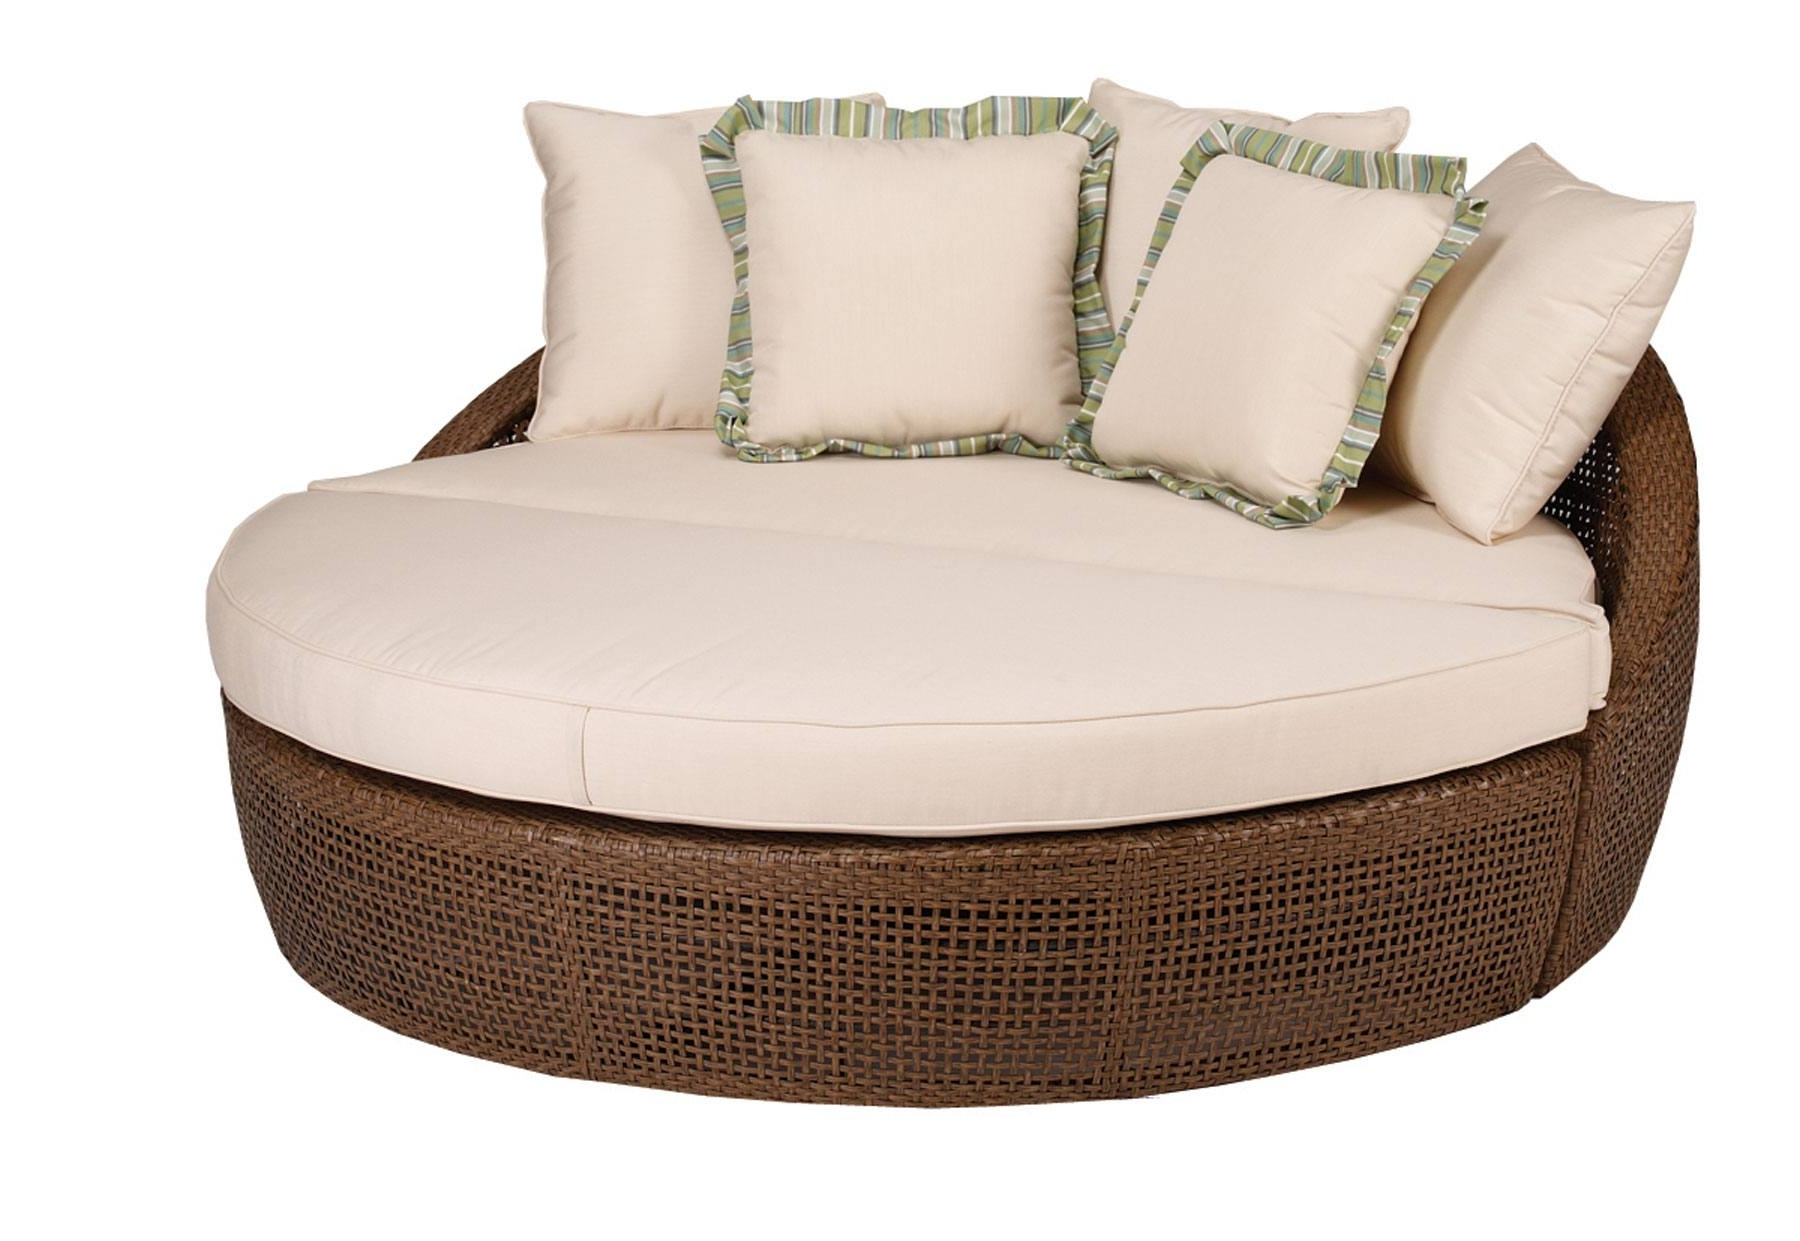 Cheap Chaise Lounge (View 14 of 15)